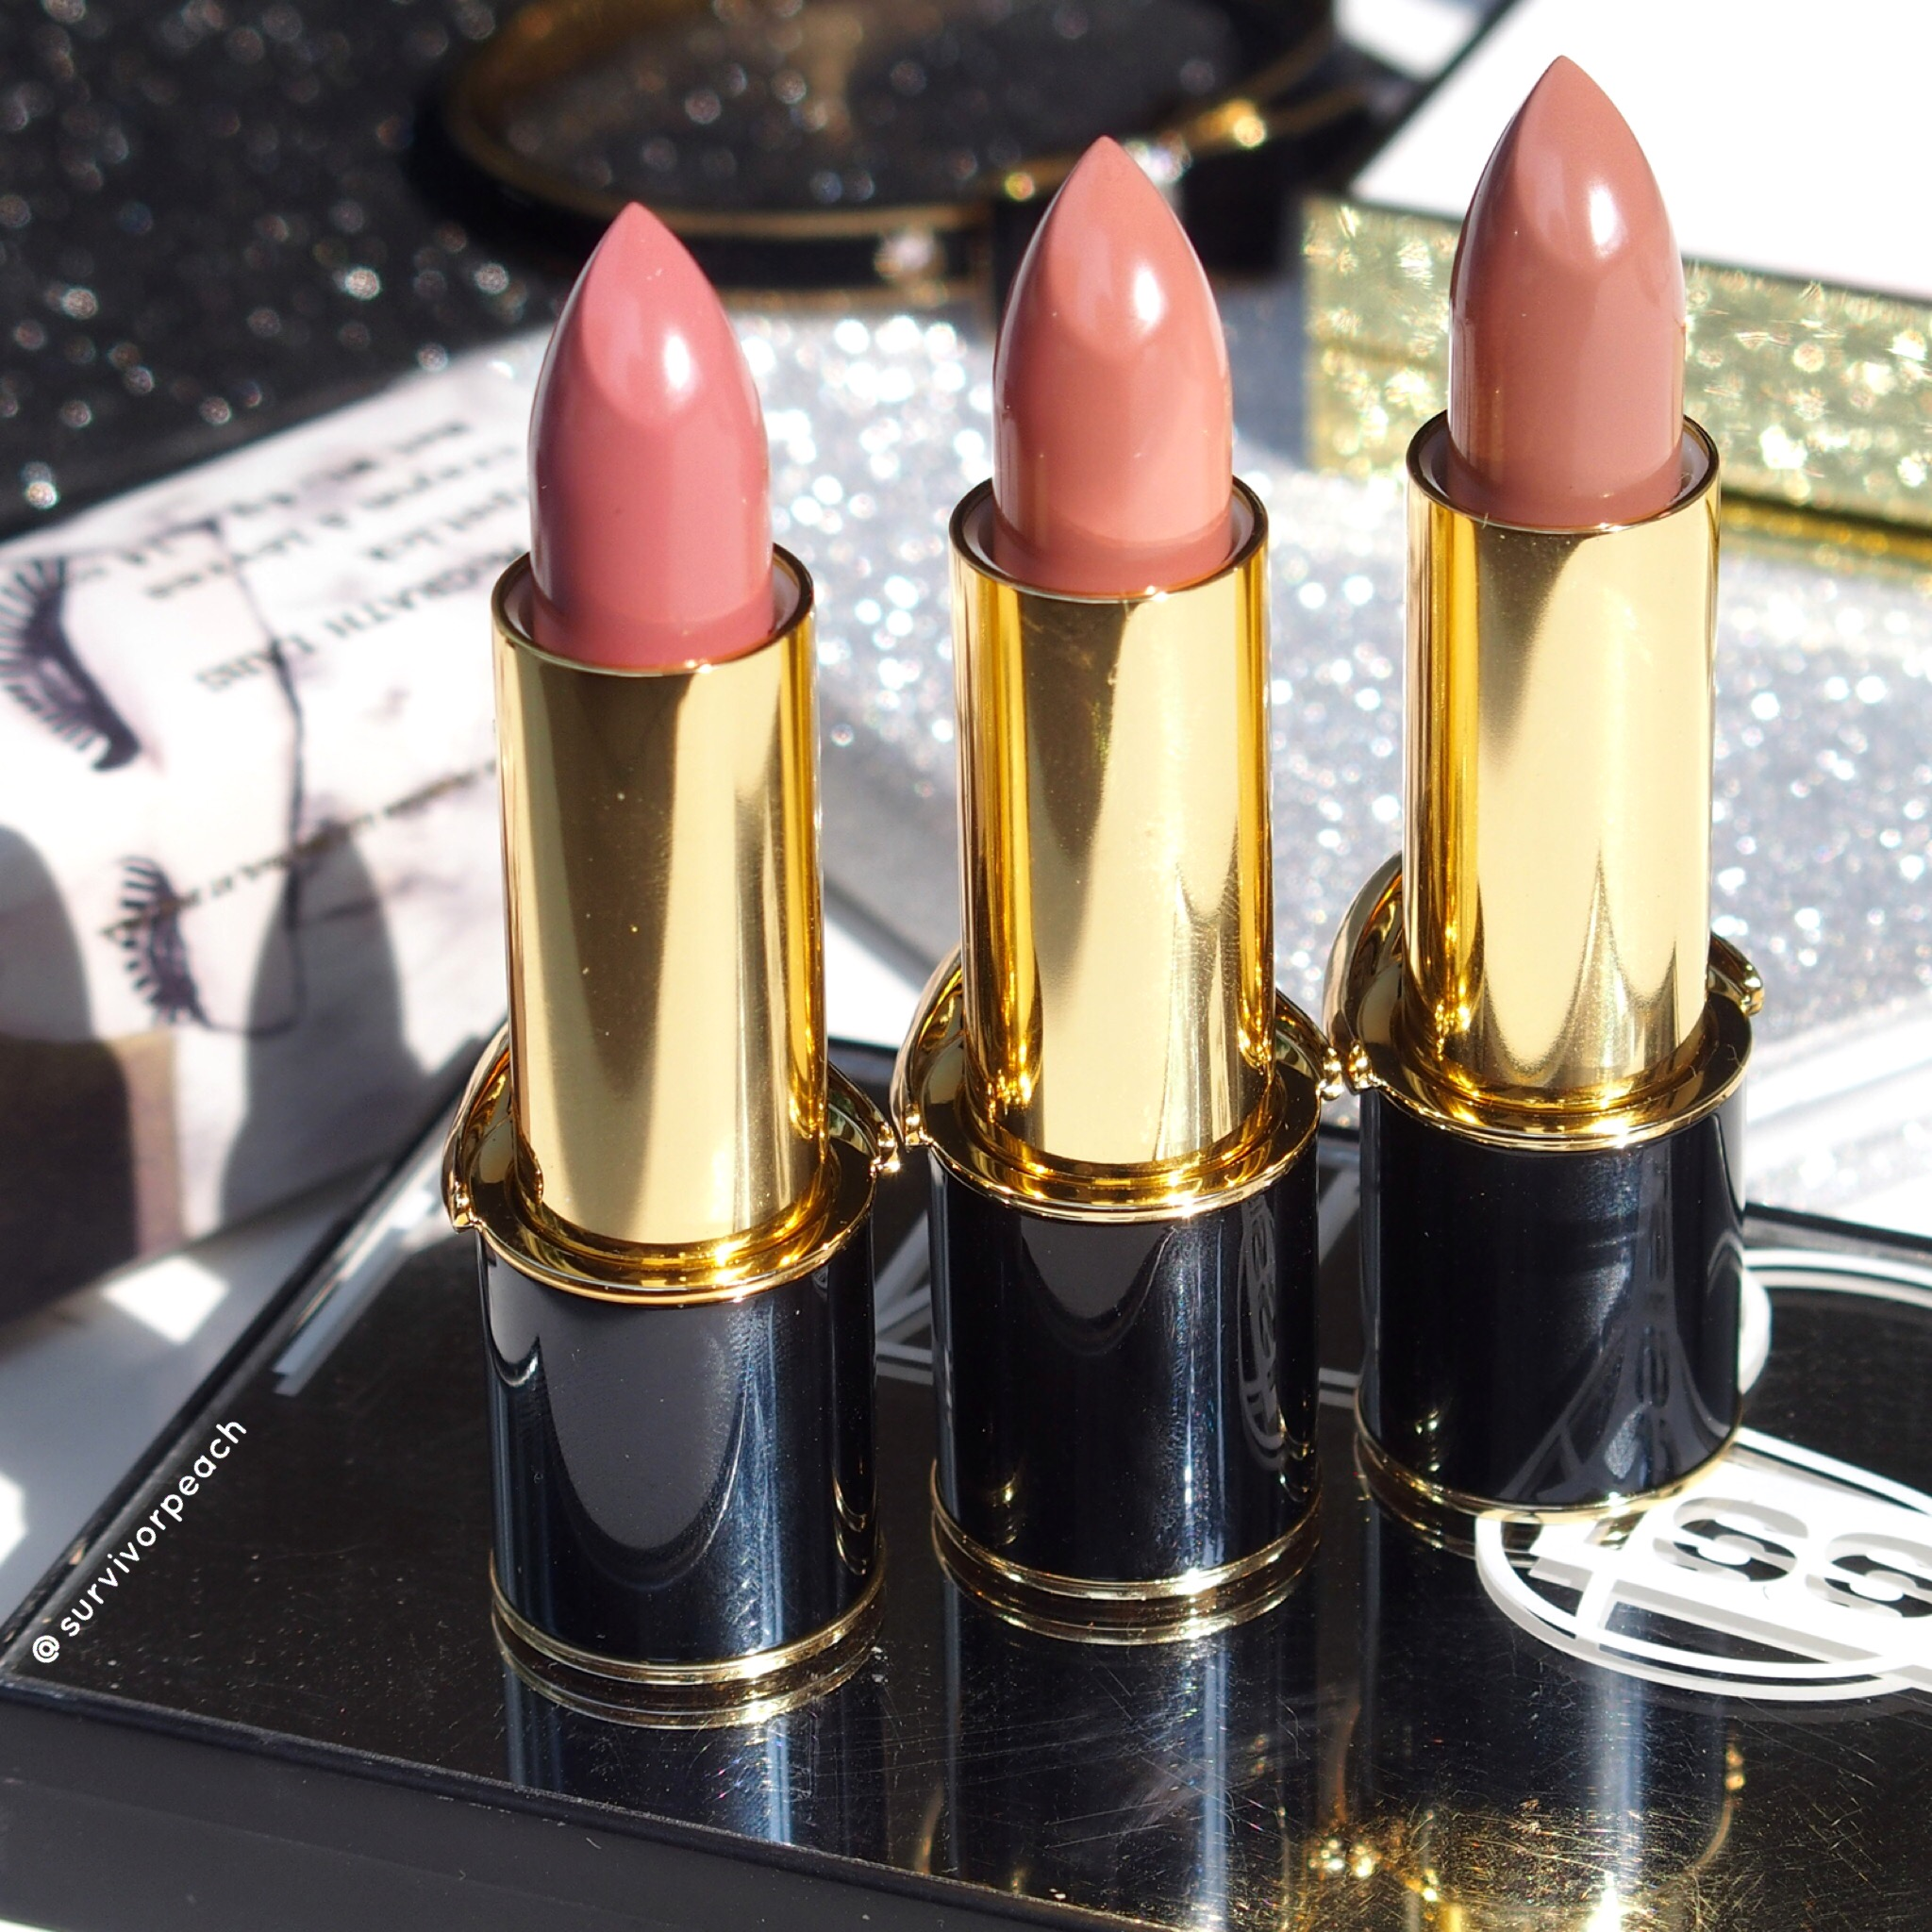 Pat McGrath Labs Luxe Trance Lipsticks in shades Donatella, Valetta, Sextrology